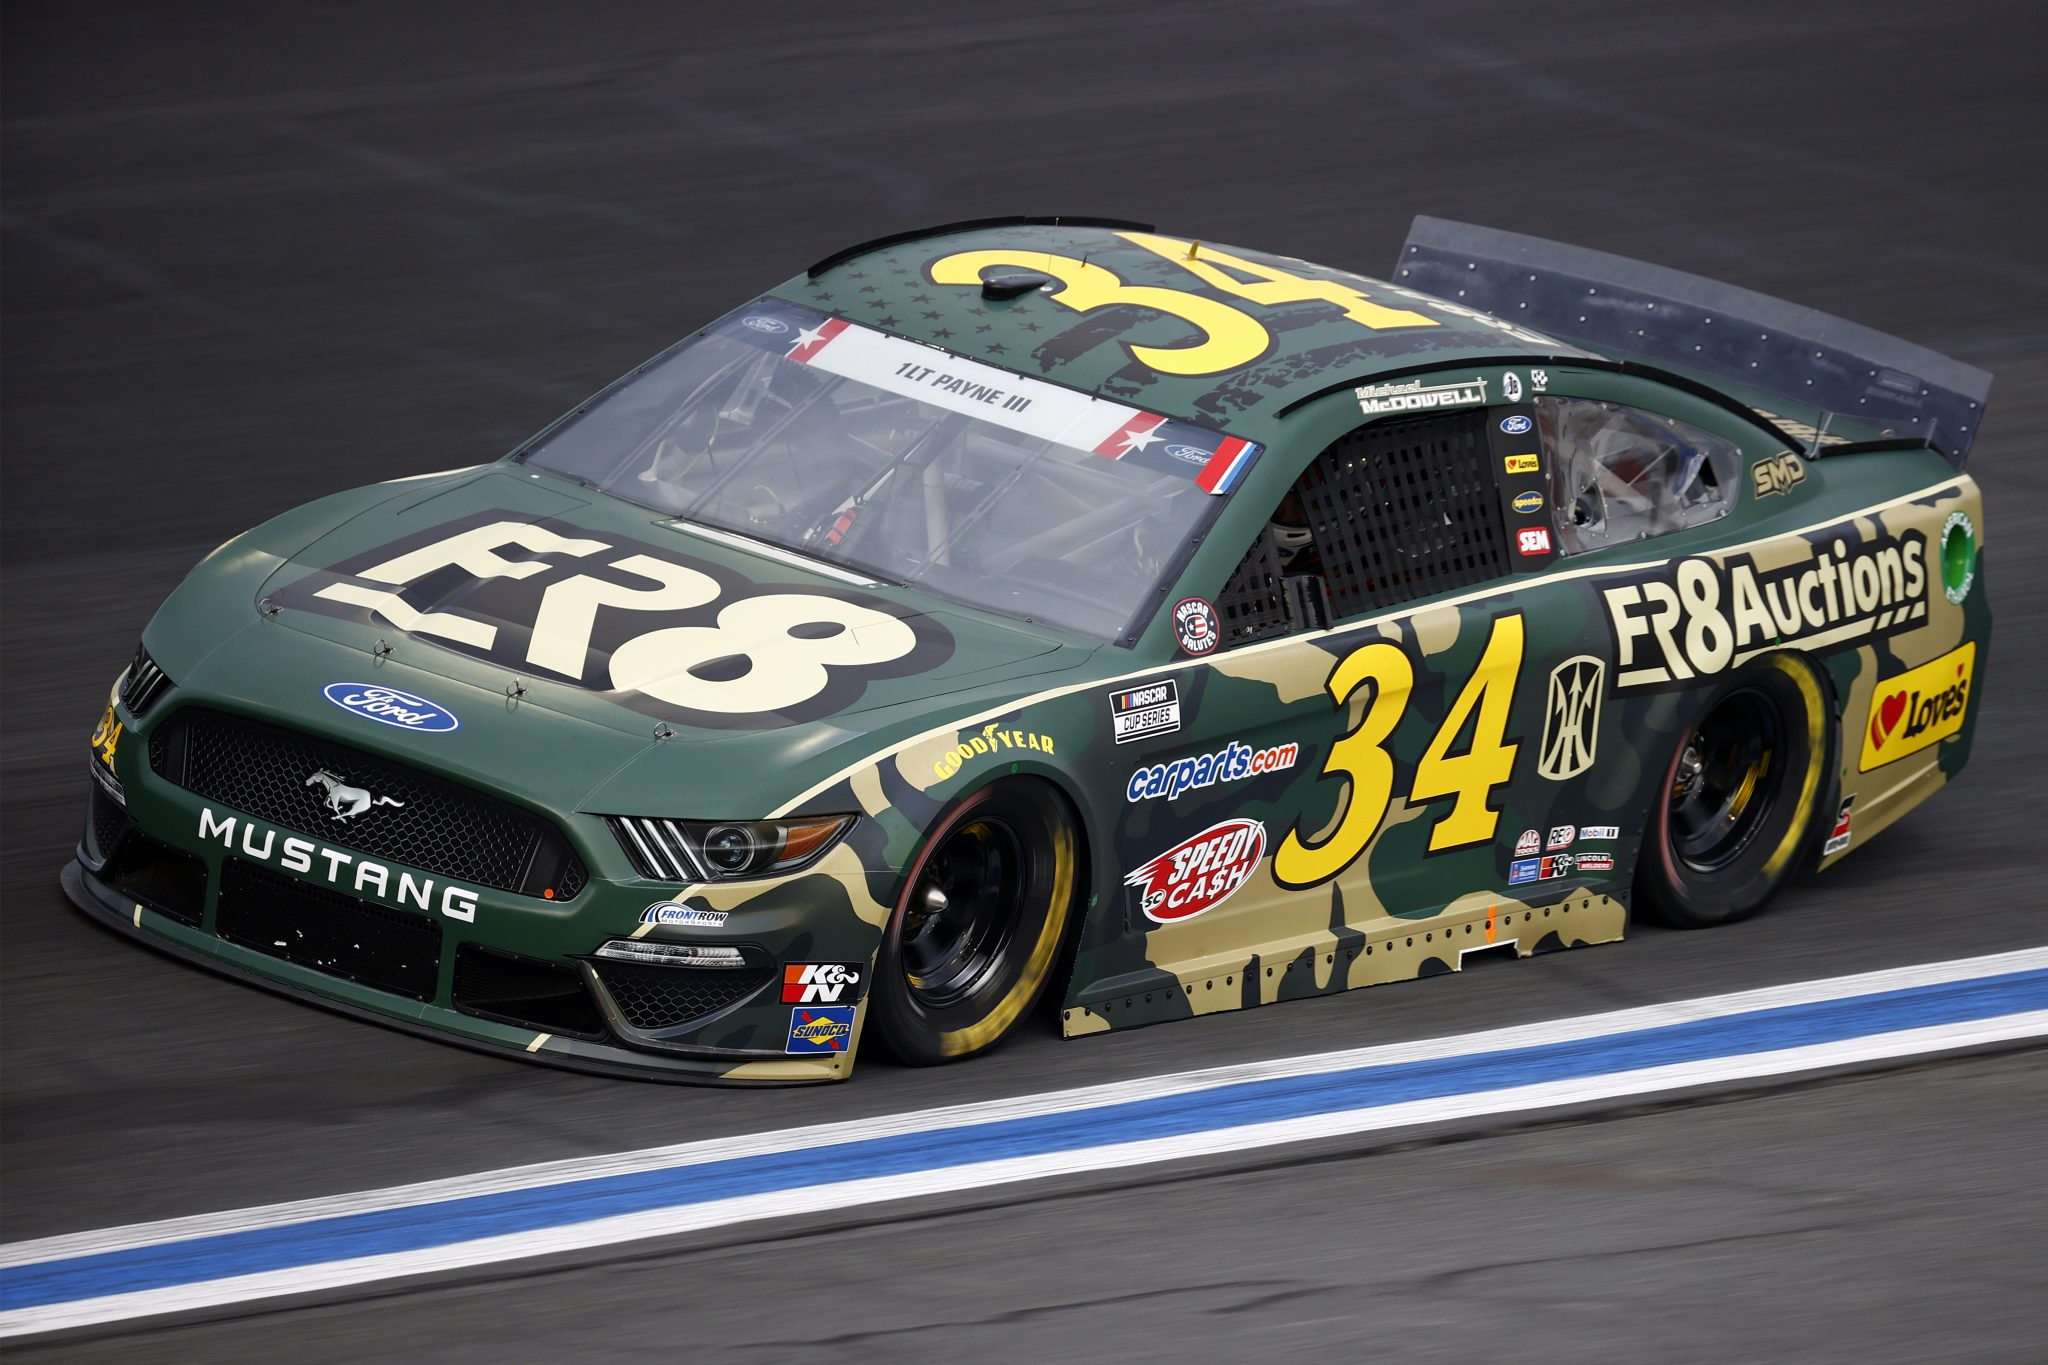 CONCORD, NORTH CAROLINA - MAY 28: Michael McDowell, driver of the #34 Fr8Auctions Ford, drives during practice for the NASCAR Cup Series Coca-Cola 600 at Charlotte Motor Speedway on May 28, 2021 in Concord, North Carolina. (Photo by Jared C. Tilton/Getty Images) | Getty Images